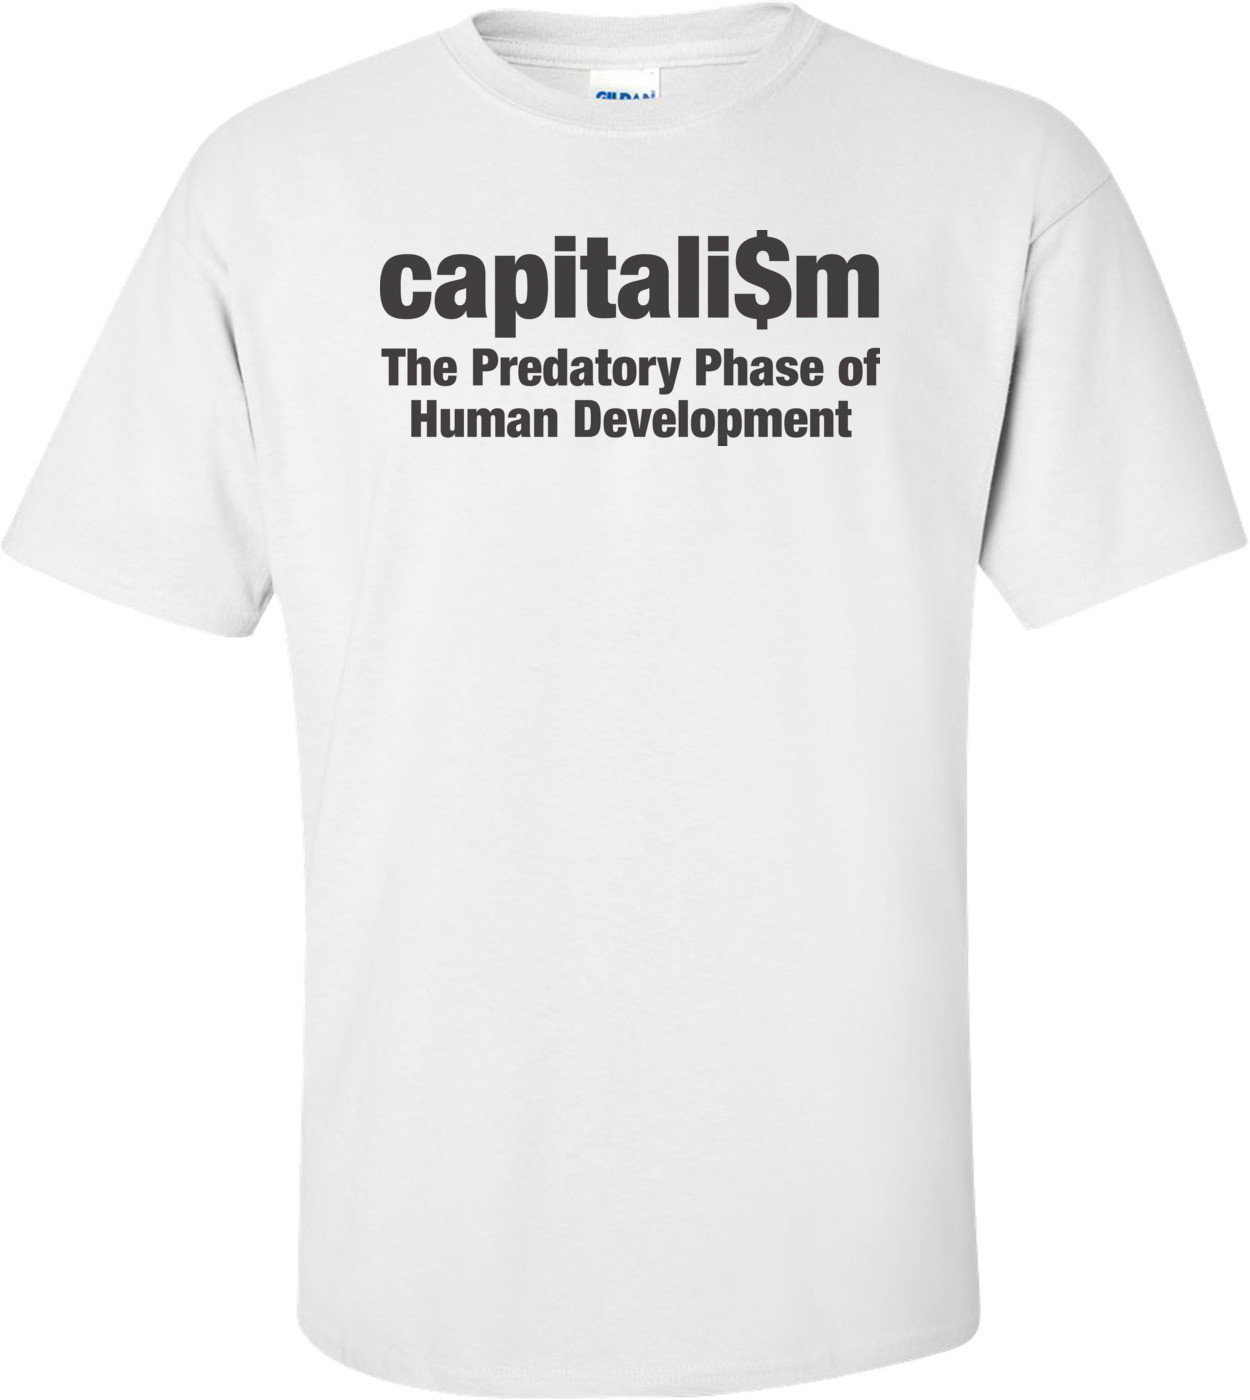 Capitalism - The Predatory Phase Of Human Development